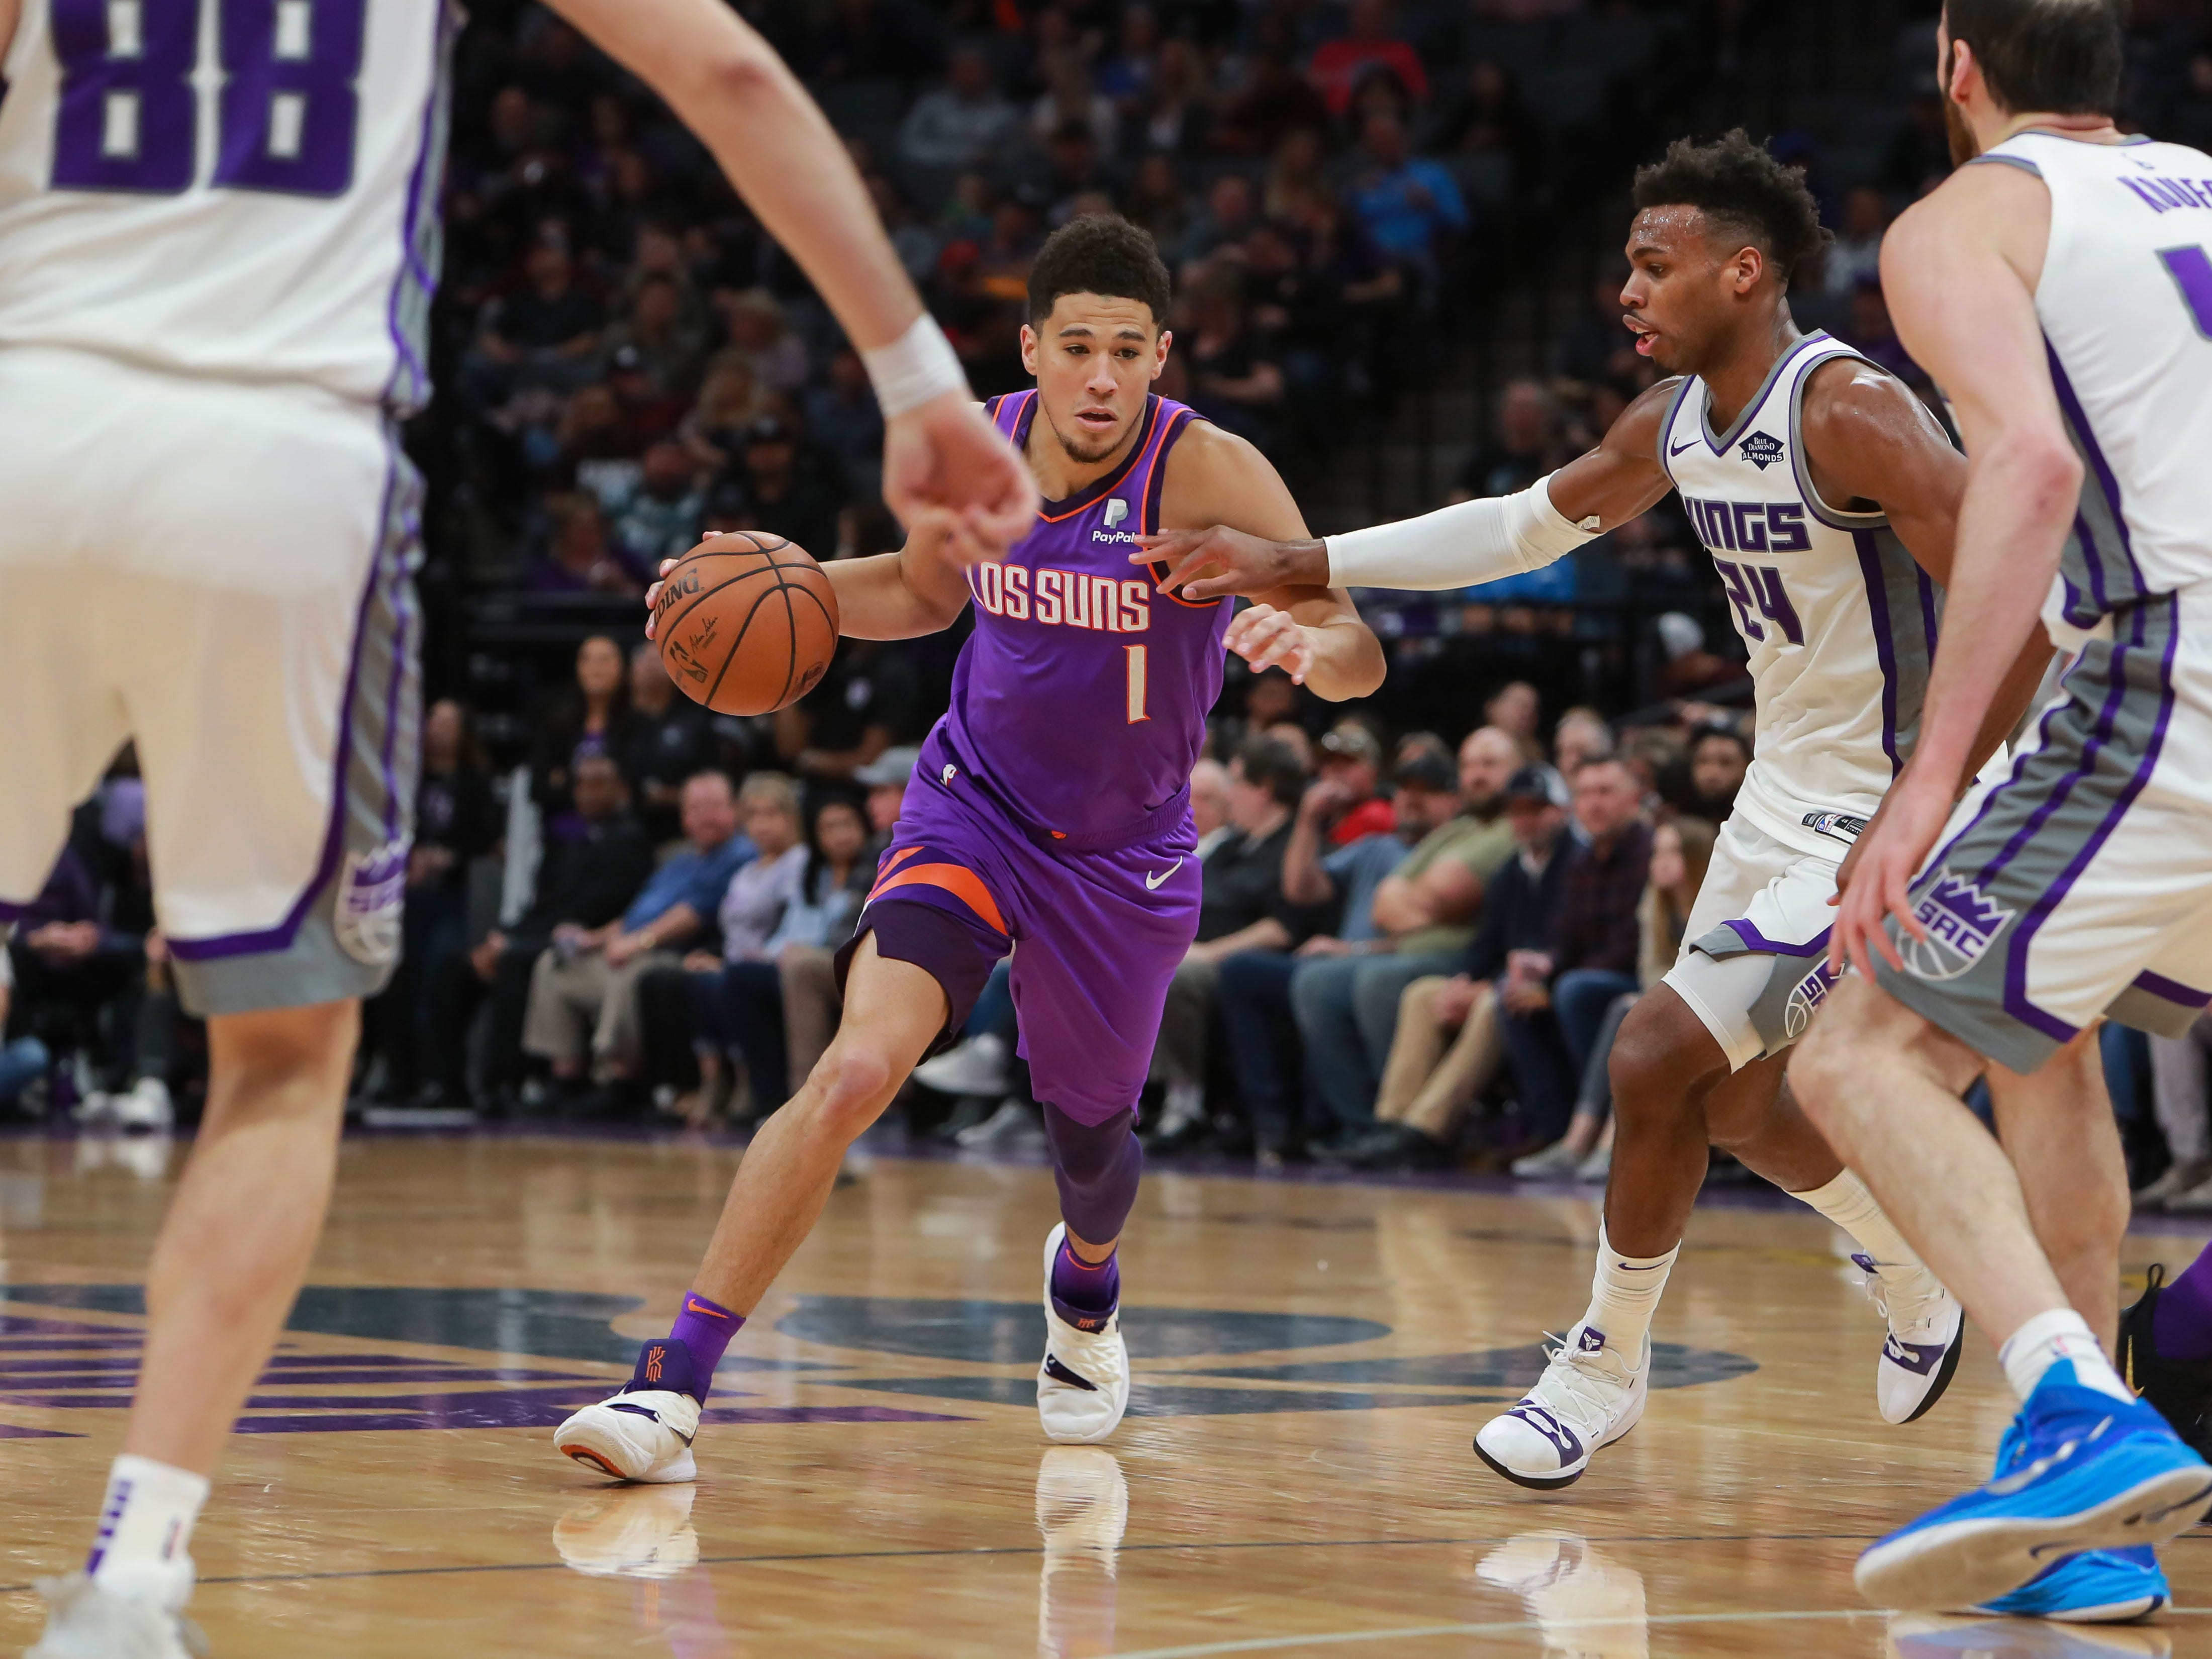 Mar 23, 2019; Sacramento, CA, USA; Phoenix Suns guard Devin Booker (1) dribbles the ball against Sacramento Kings guard Buddy Hield (24) during the second quarter at Golden 1 Center.